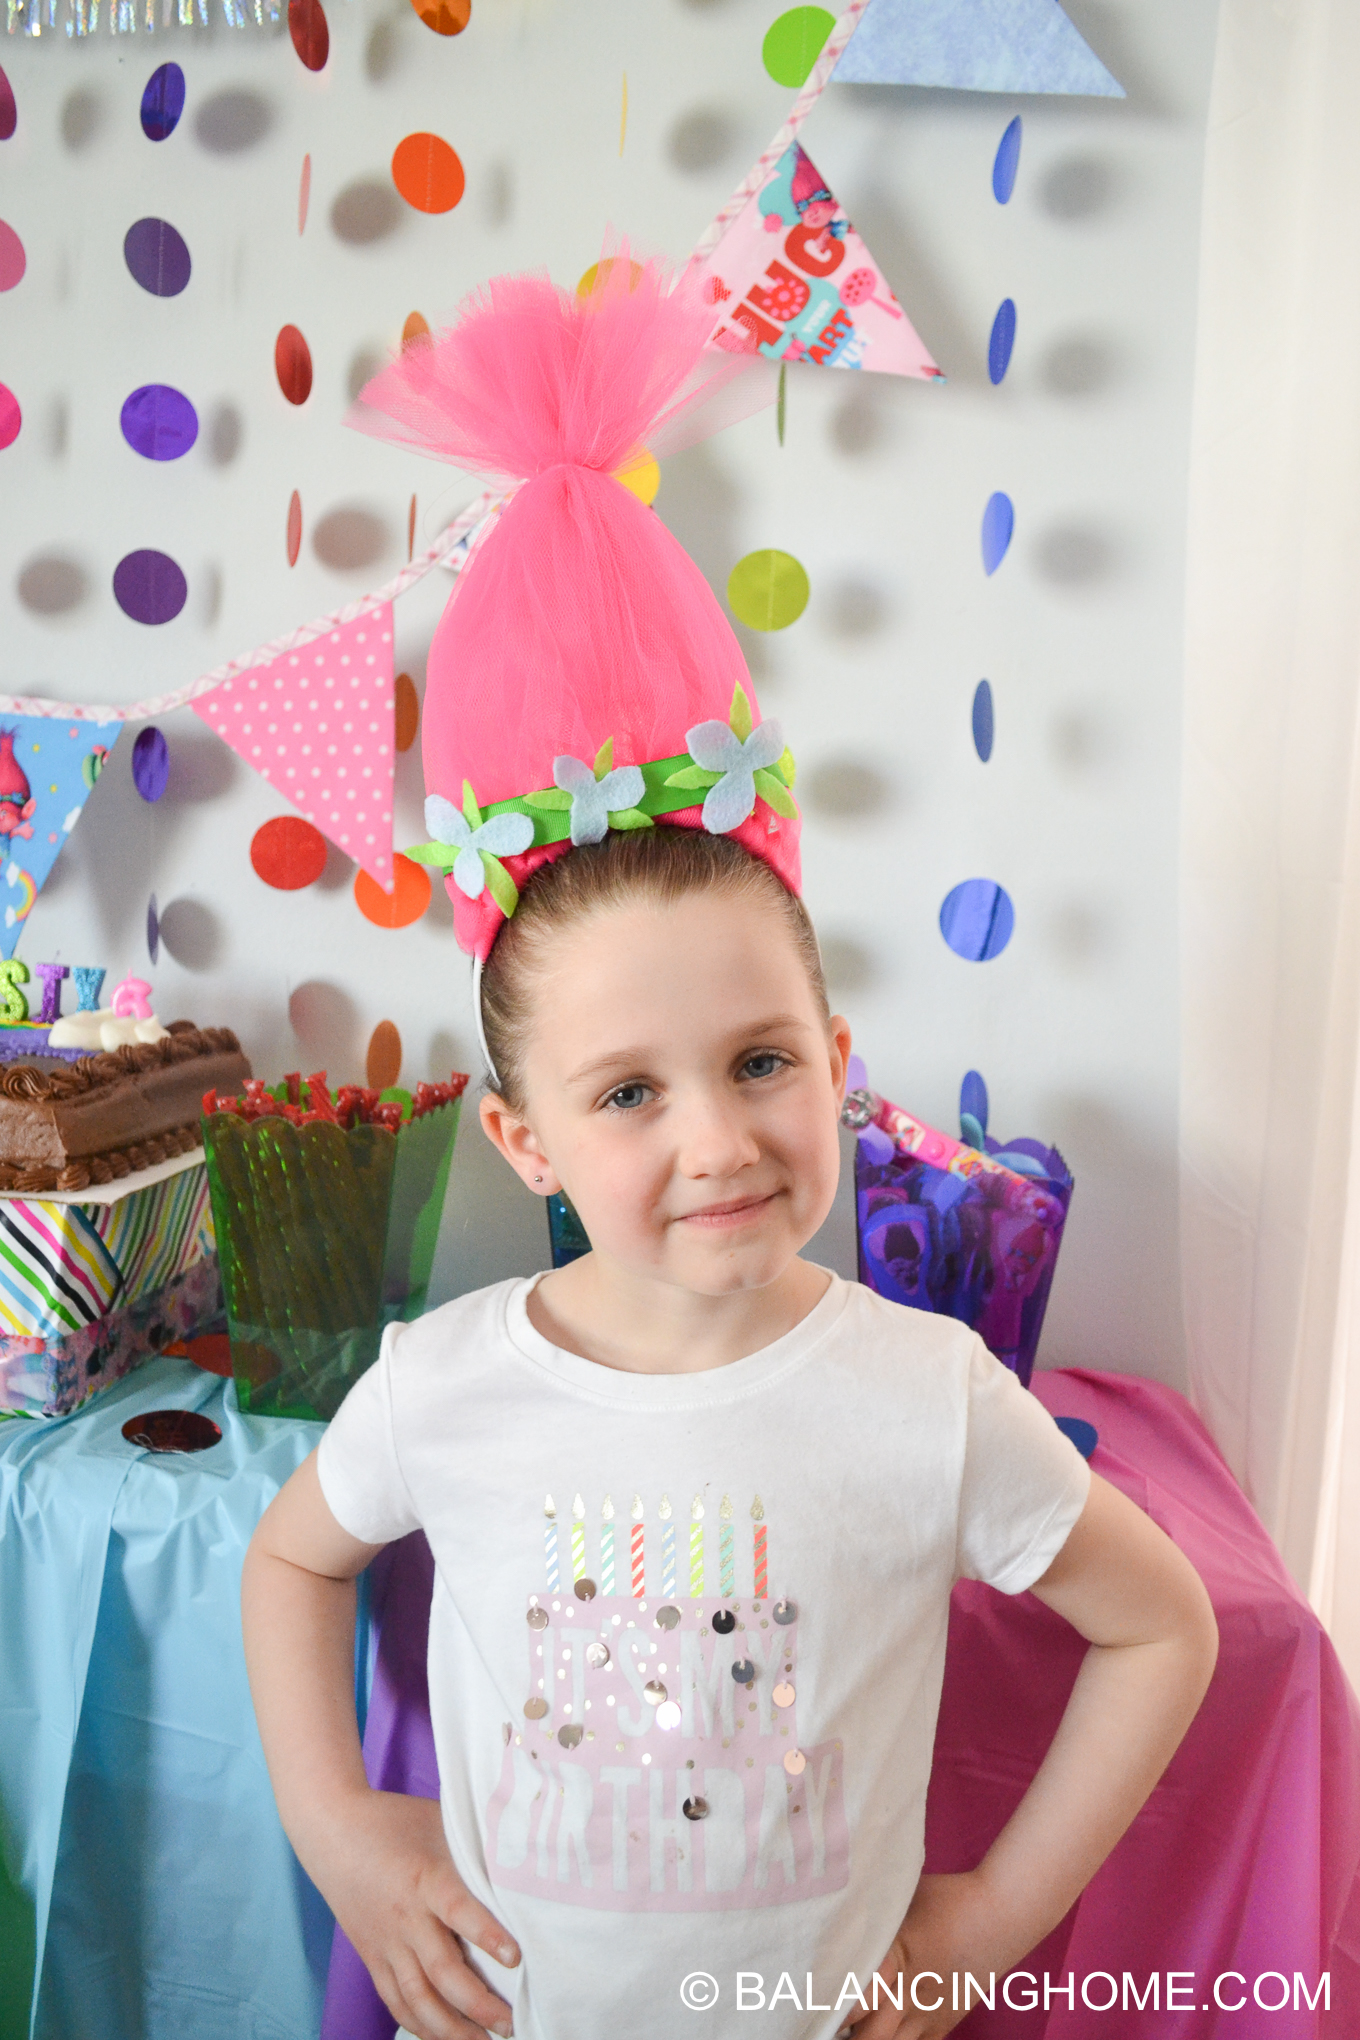 Trolls birthday party: DIY Trolls Poppy Hair Headband Tutorial using tulle